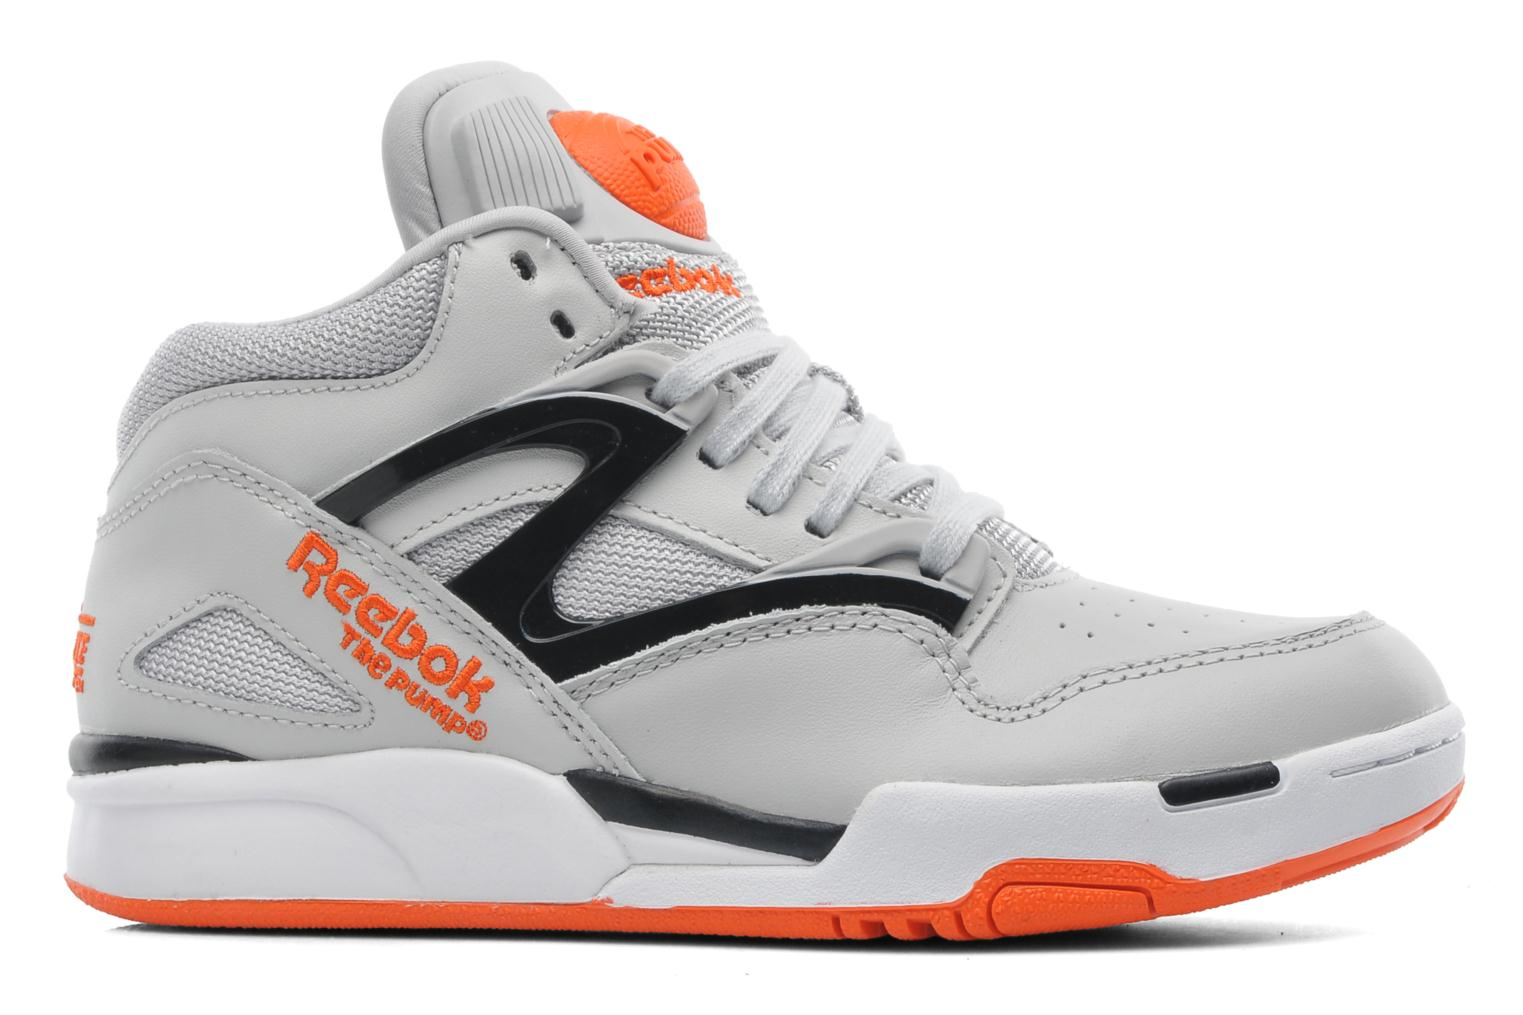 reebok versa pump omni lite trainers in grey at 216579. Black Bedroom Furniture Sets. Home Design Ideas